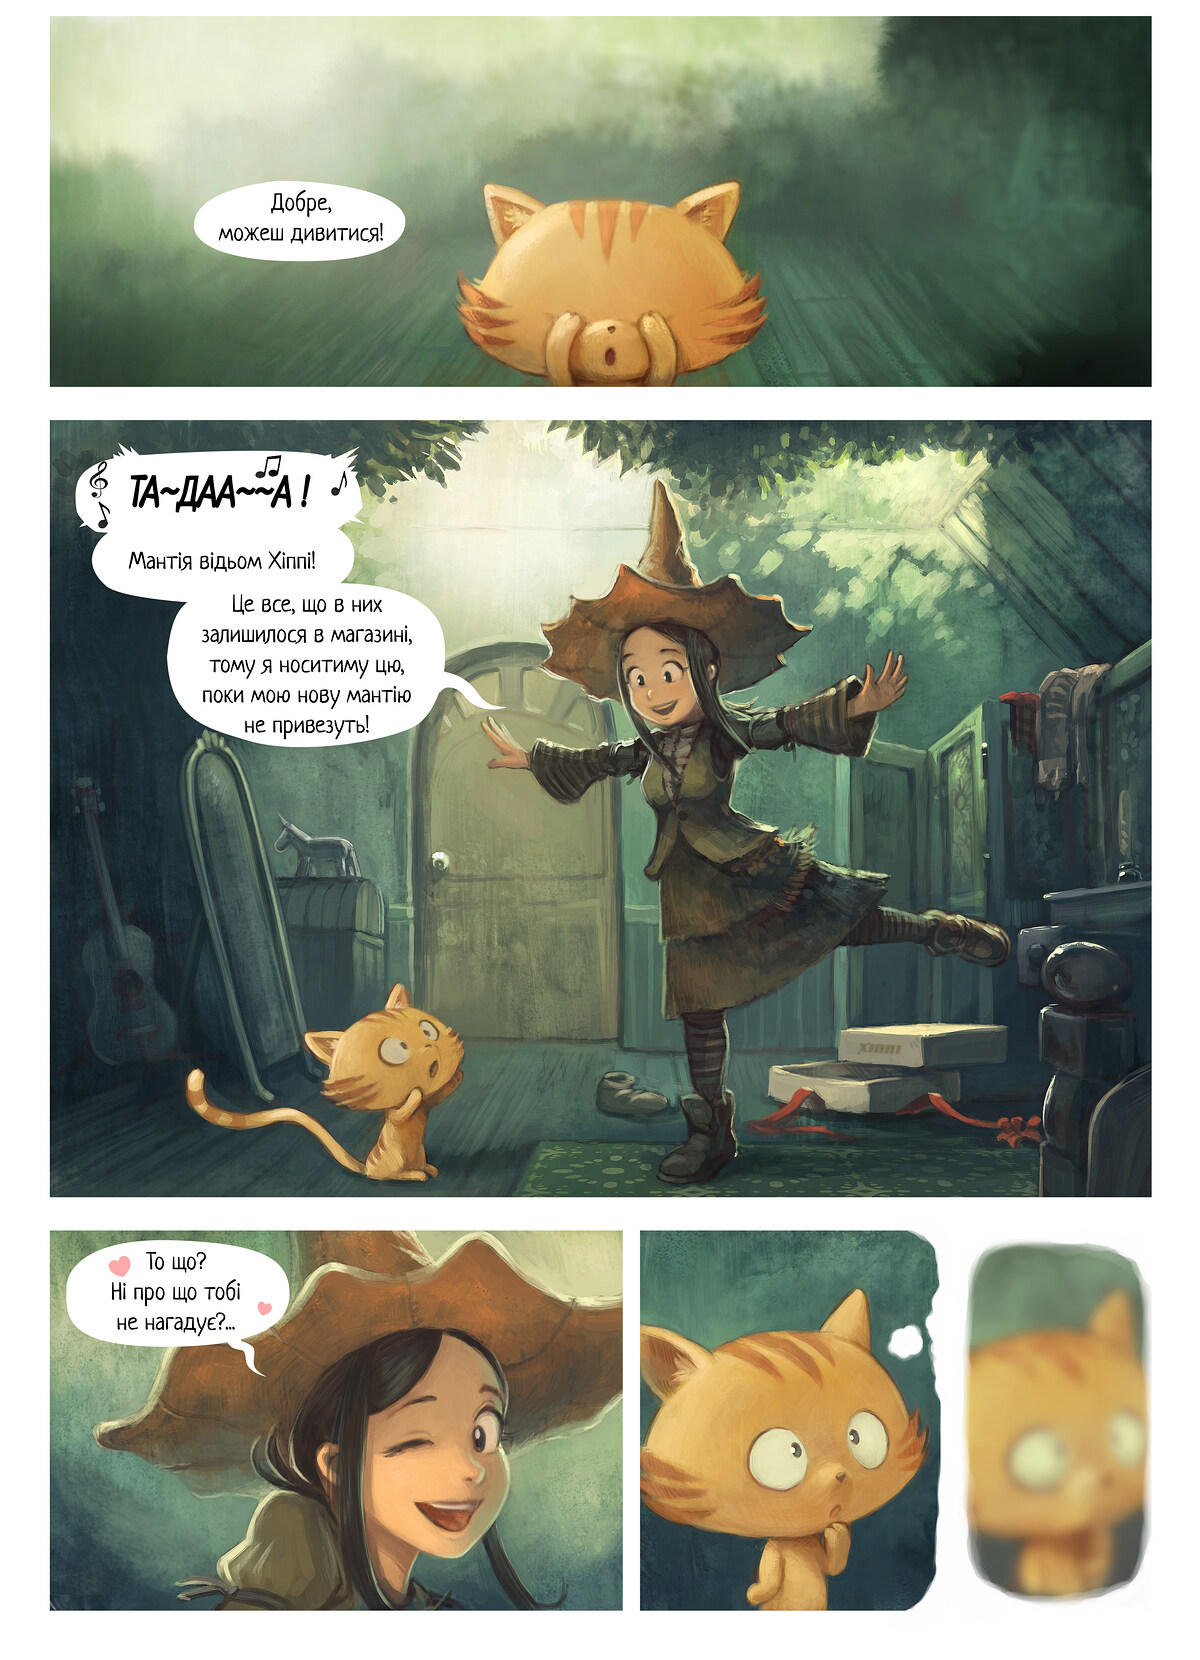 A webcomic page of Pepper&Carrot, епізод 18 [uk], стор. 1